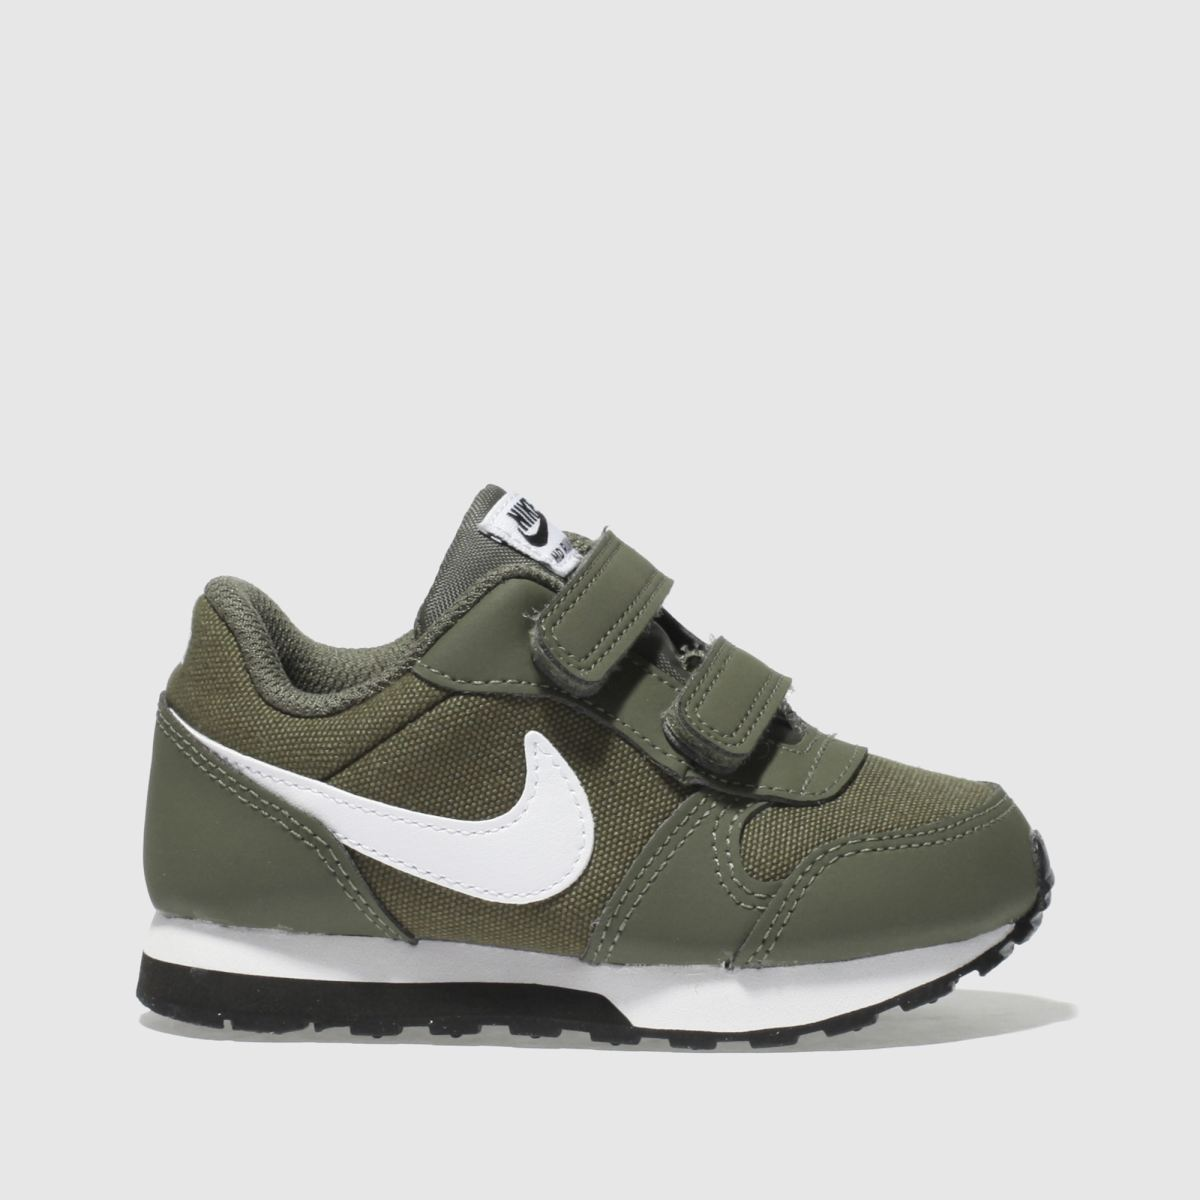 Nike Khaki Md Runner 2 Unisex Toddler Toddler